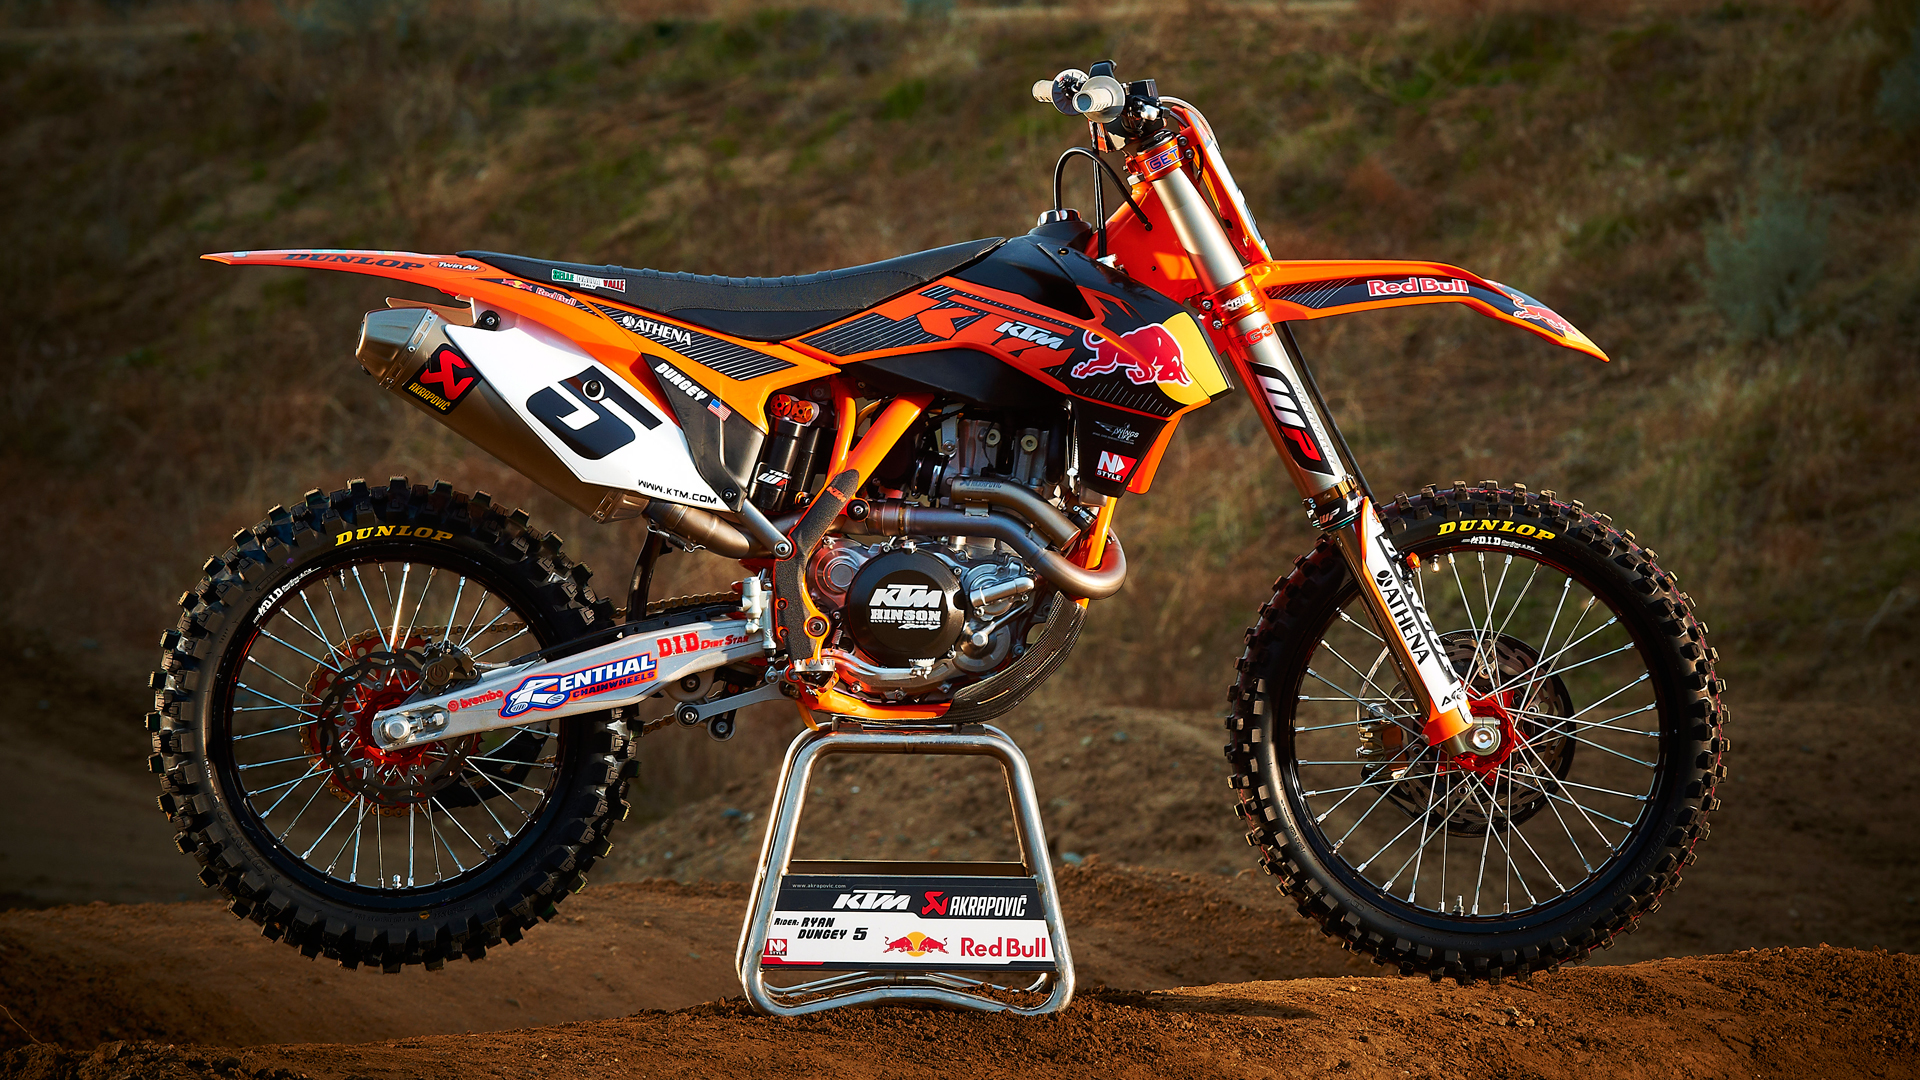 KTM motocross wallpaper HD Desktop Wallpaper 1920x1080